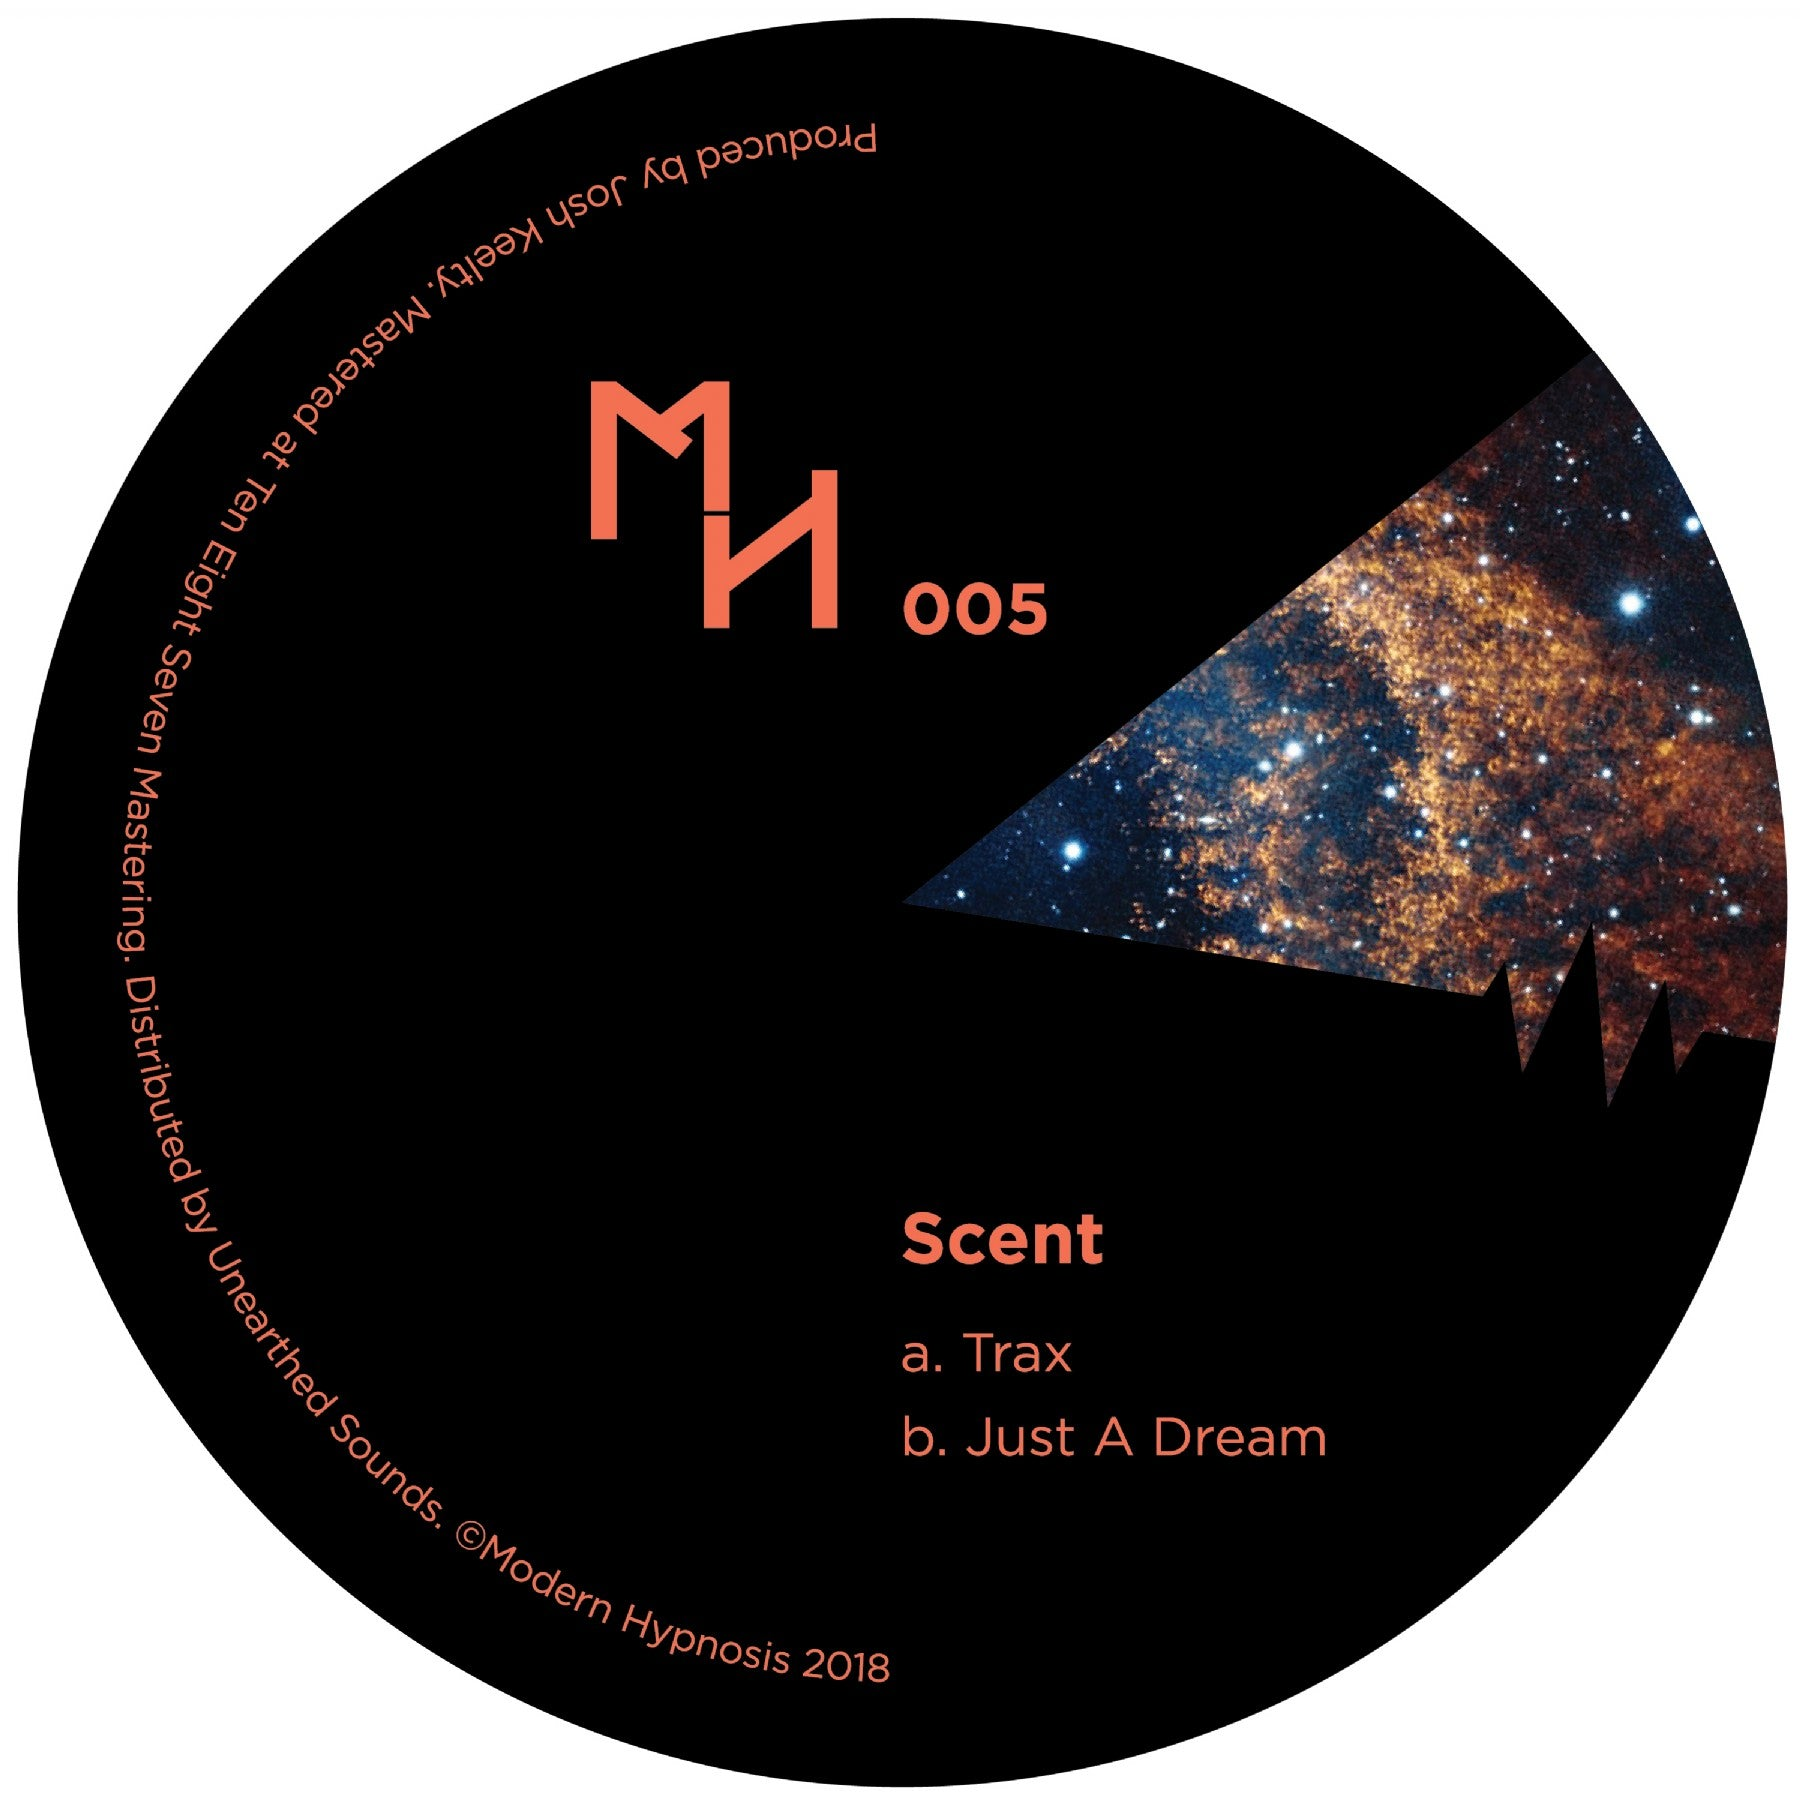 Scent - Trax / Just a Dream